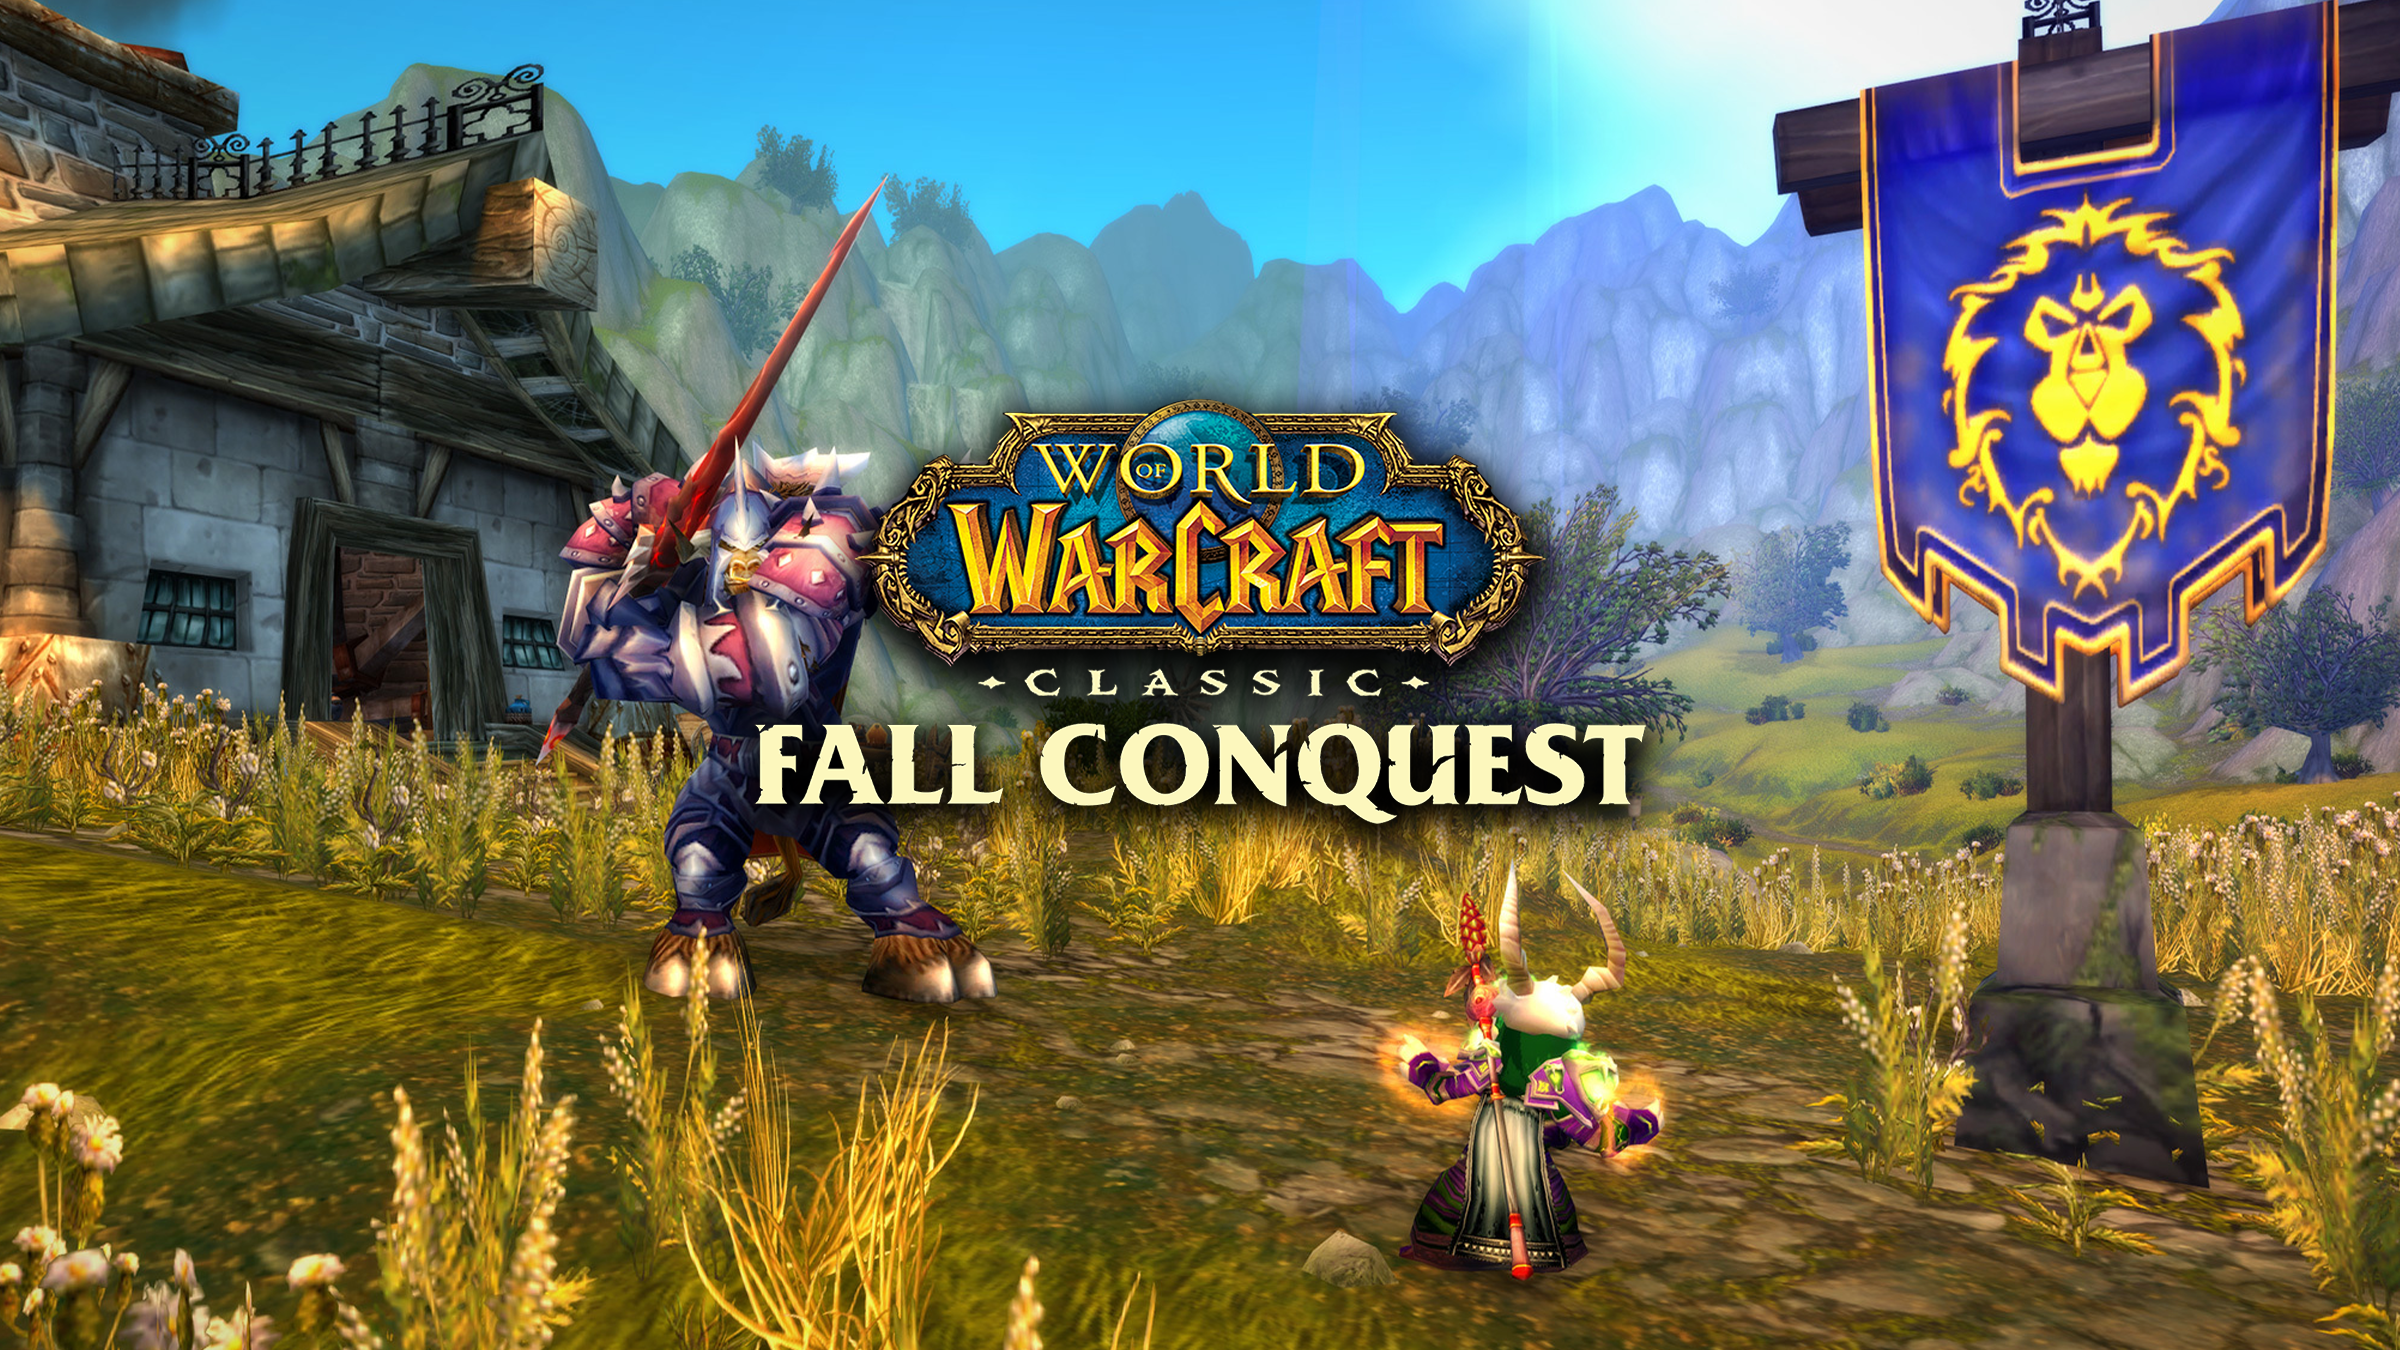 Presentamos el World of Warcraft Classic Fall Conquest